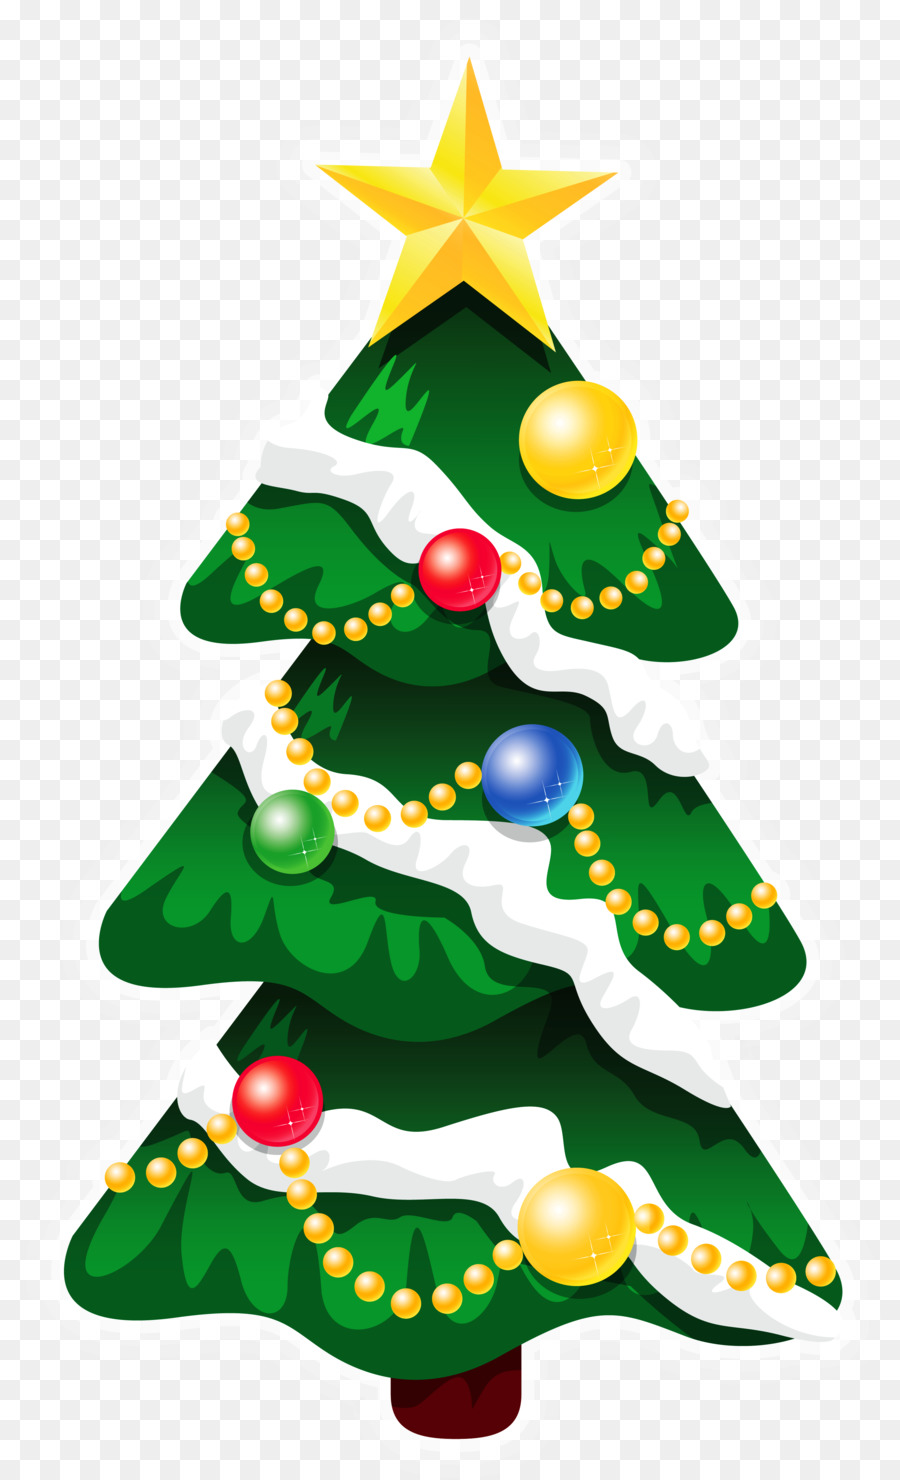 Christmas Tree Illustration.Christmas Tree Illustration Clipart Illustration